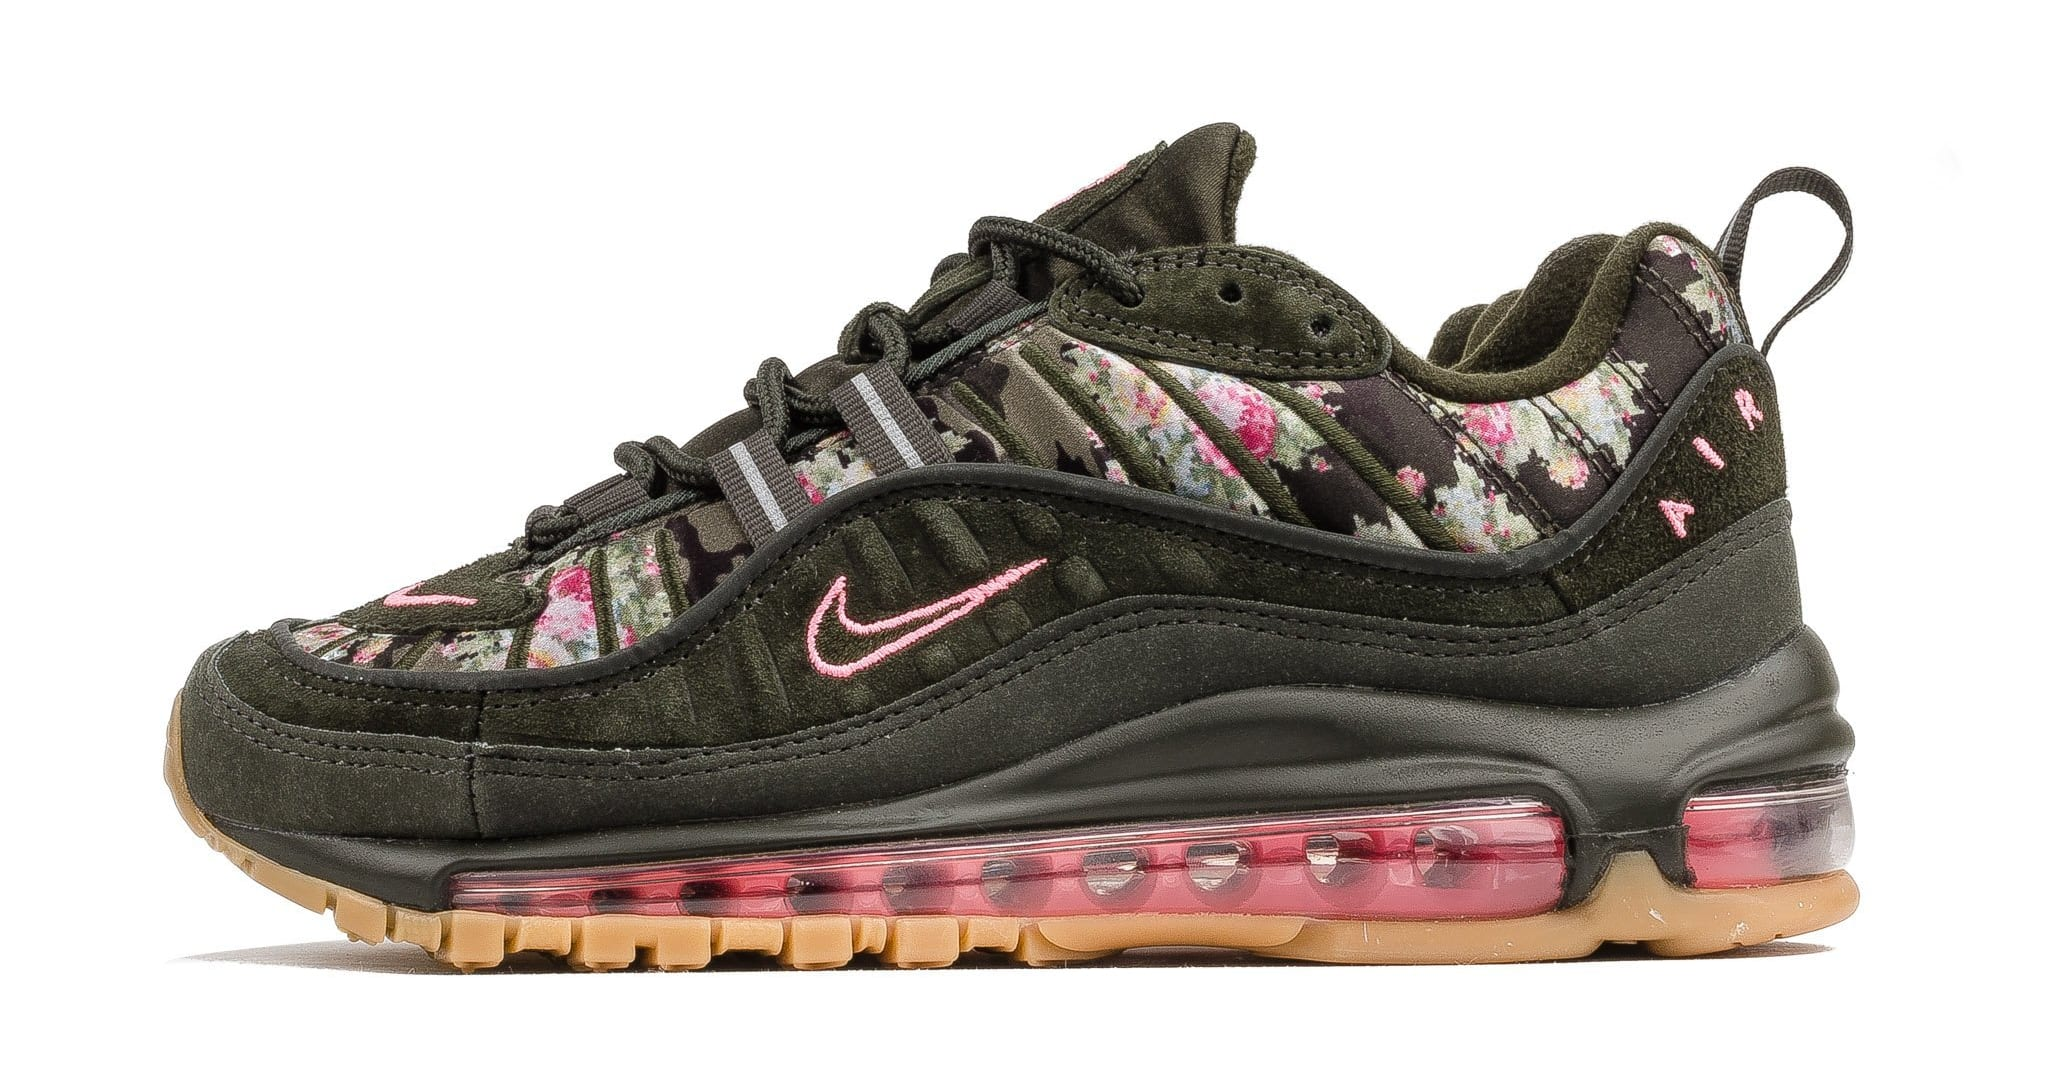 WMNS Nike Air Max 98 'Sequoia' AQ6488-300 (Lateral)